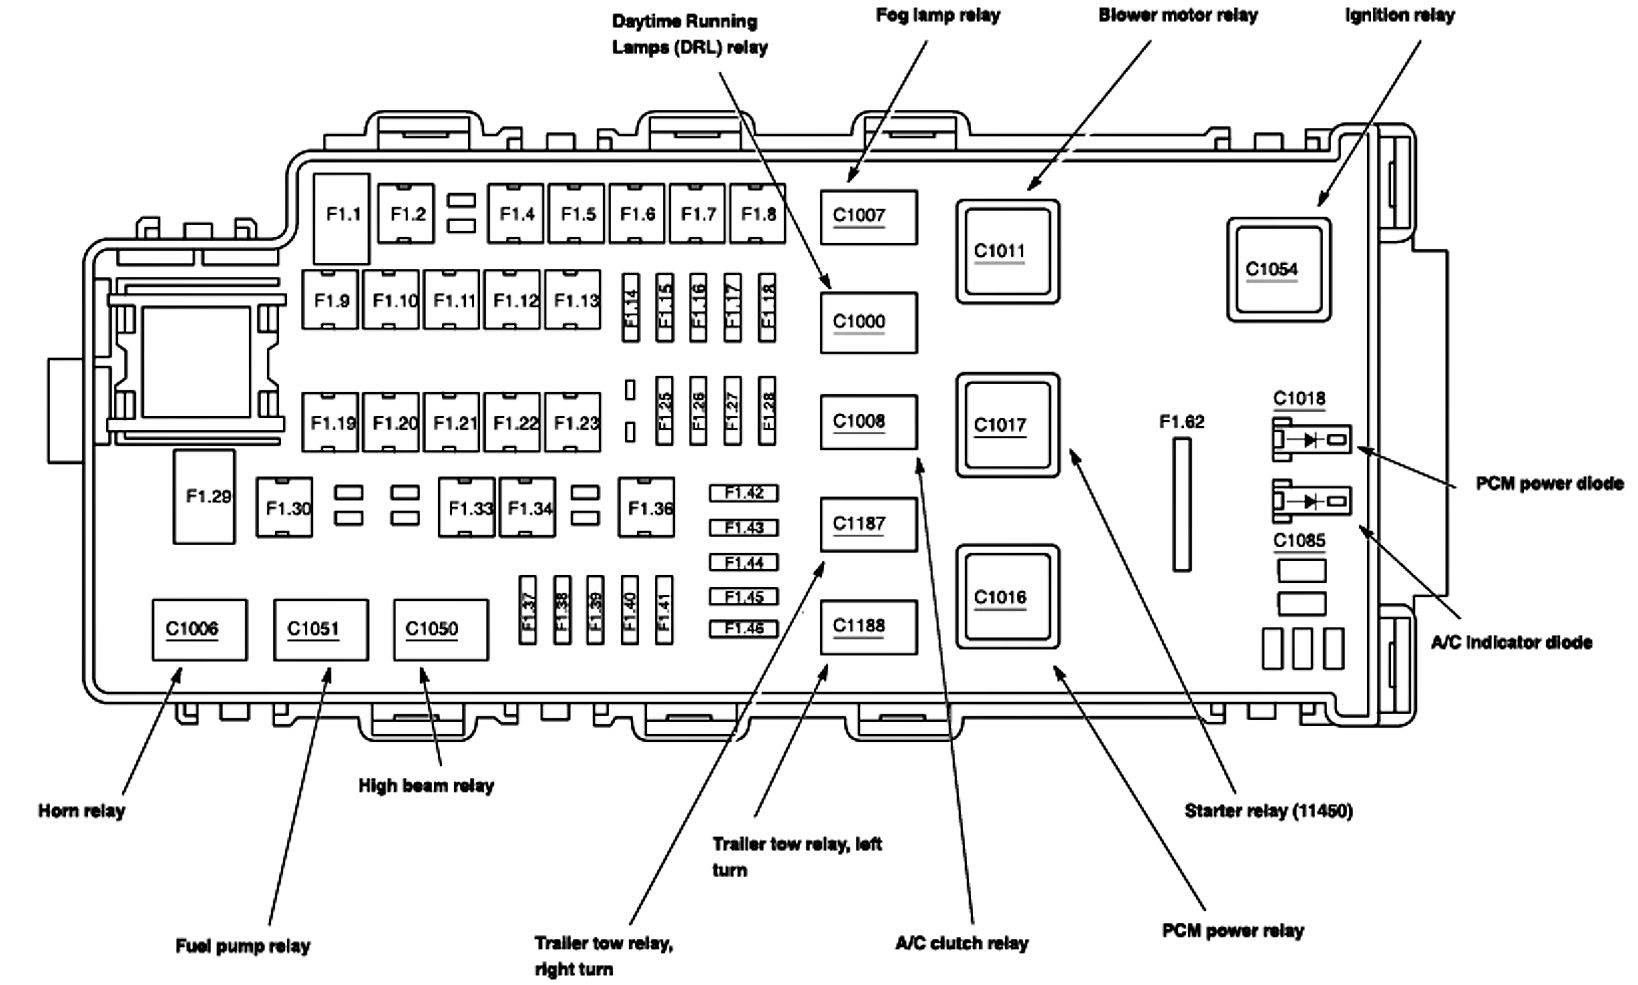 2006 Ford Explorer Fuse Box Diagram